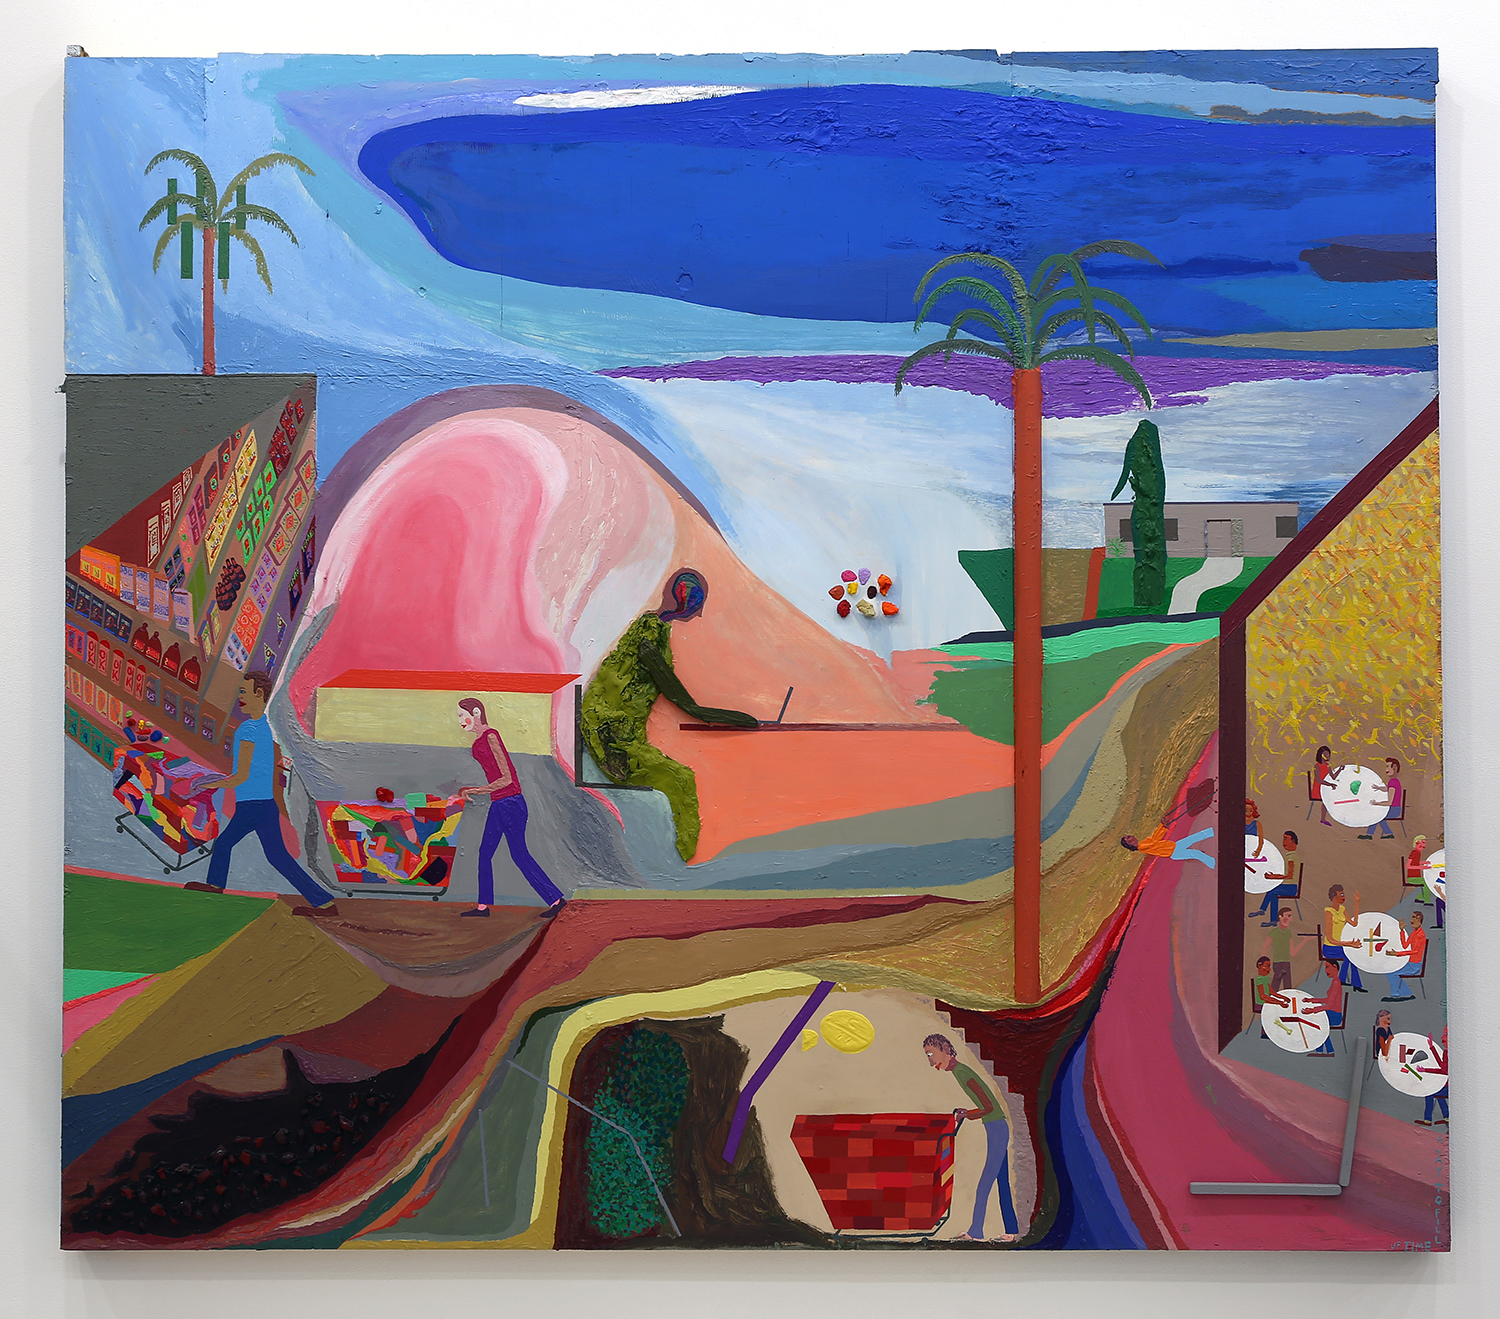 Chris Johanson, Los Angeles with Pills, 2015. Acrylic on found wood, 168.9 x 193 cm (66 1/2 x 76 in). Courtesy of the Artist and Altman Siegel.